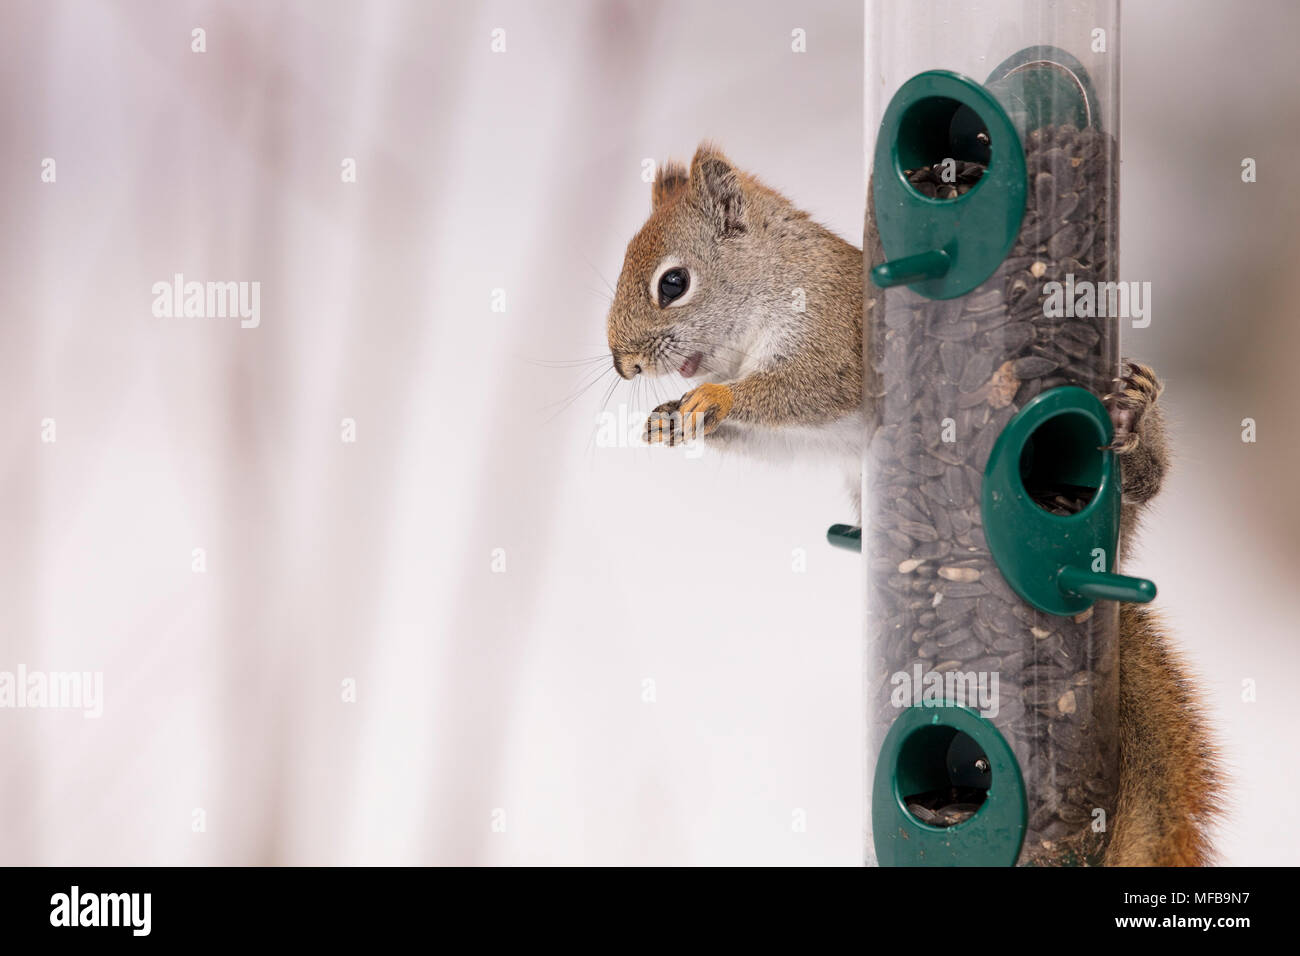 MAYNOOTH, ONTARIO, CANADA - April 06, 2018: A red squirrel (Tamiasciurus hudsonicus), part of the Sciuridae family forages for food.  ( Ryan Carter ) - Stock Image